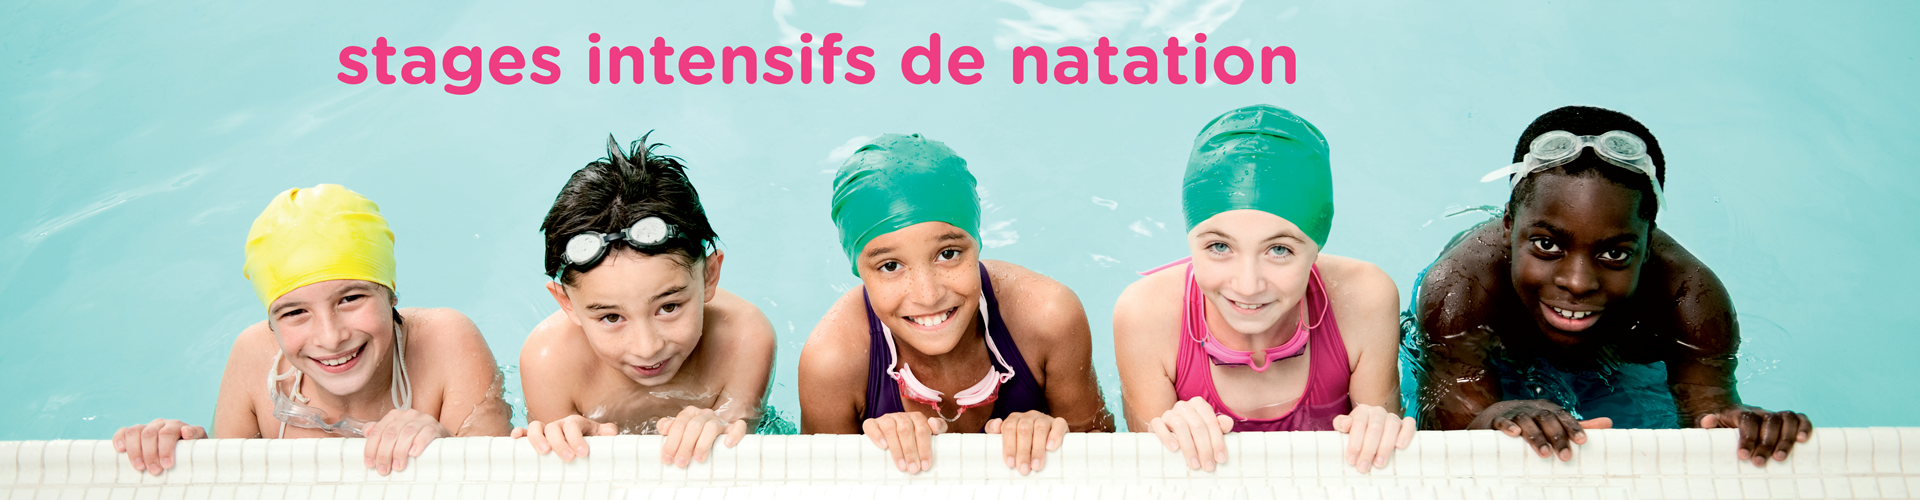 stages intensifs natation